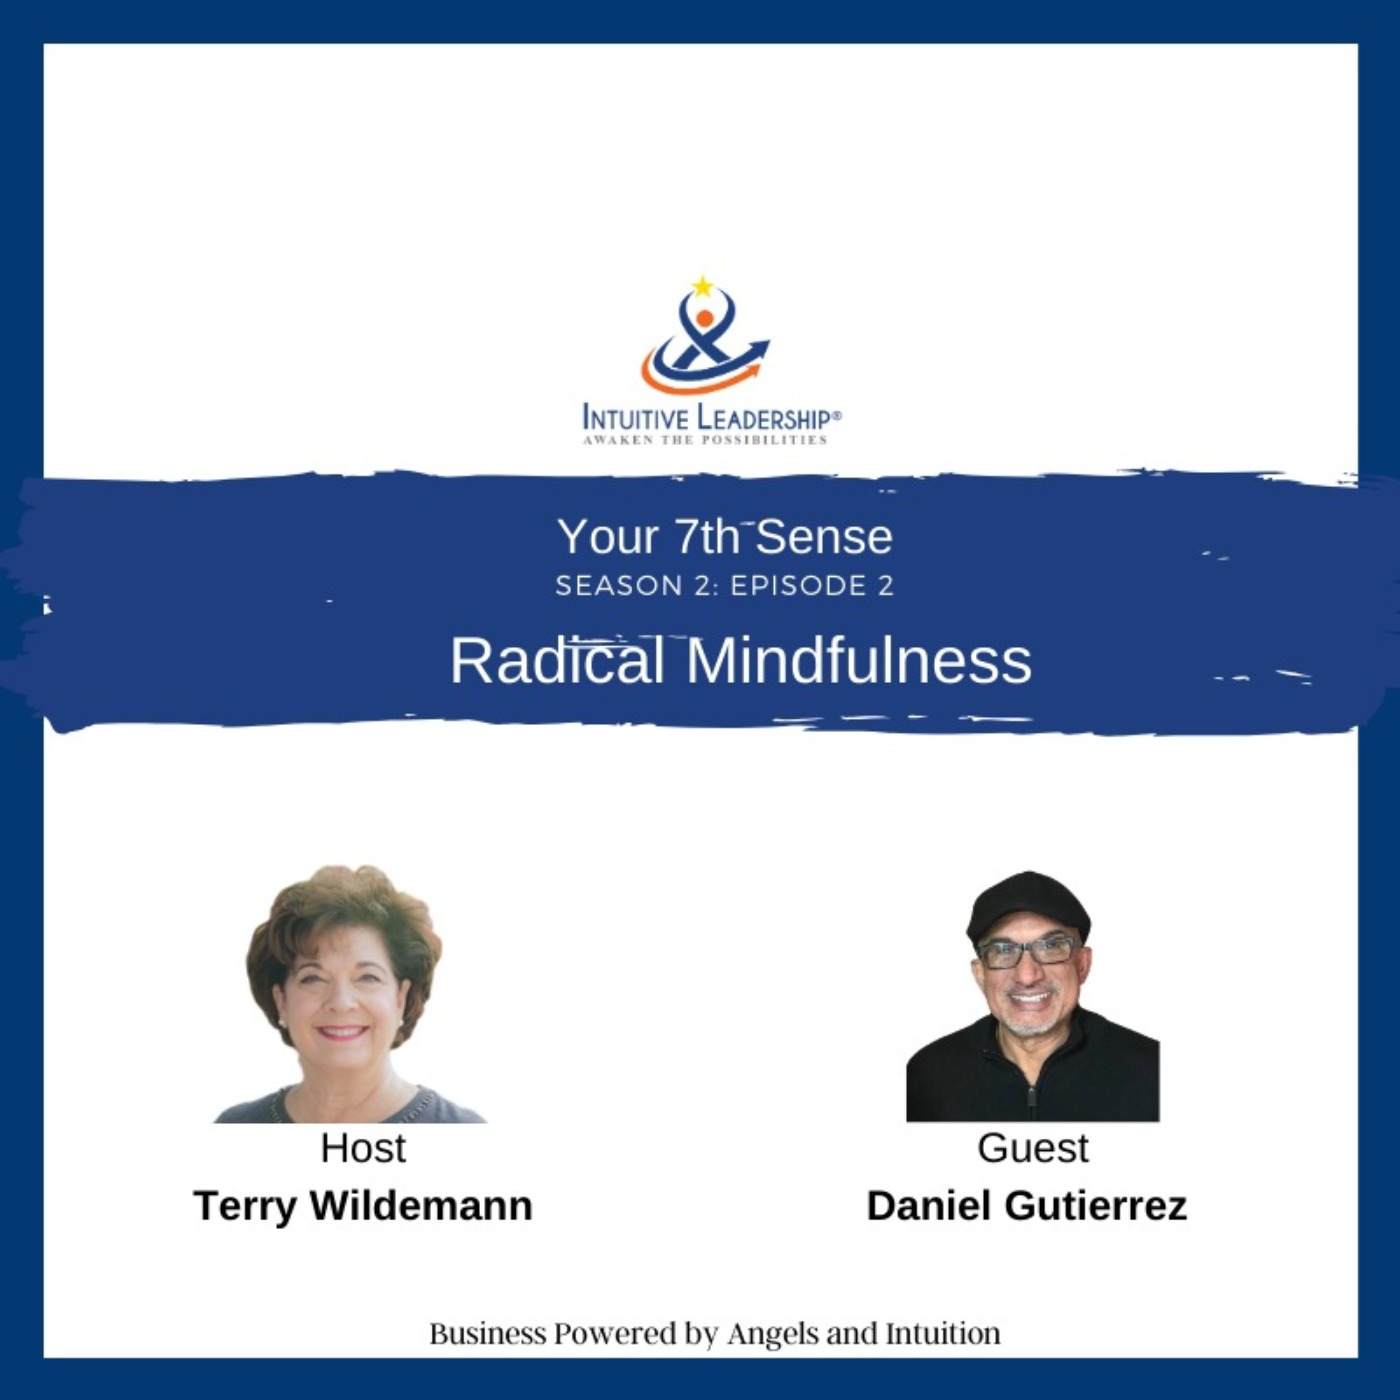 Your 7th Sense: Radical Mindfulness